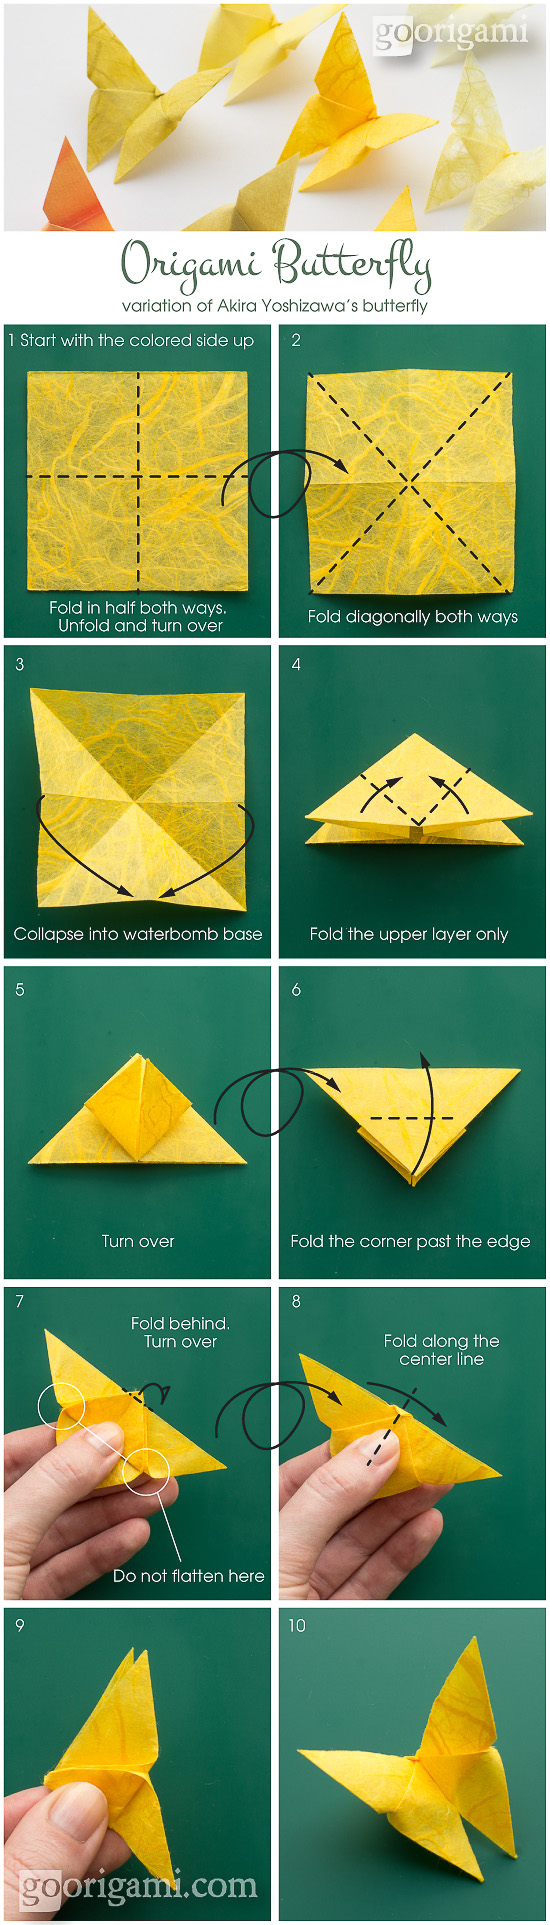 Pin It On Pinterest Go Origami Butterfly